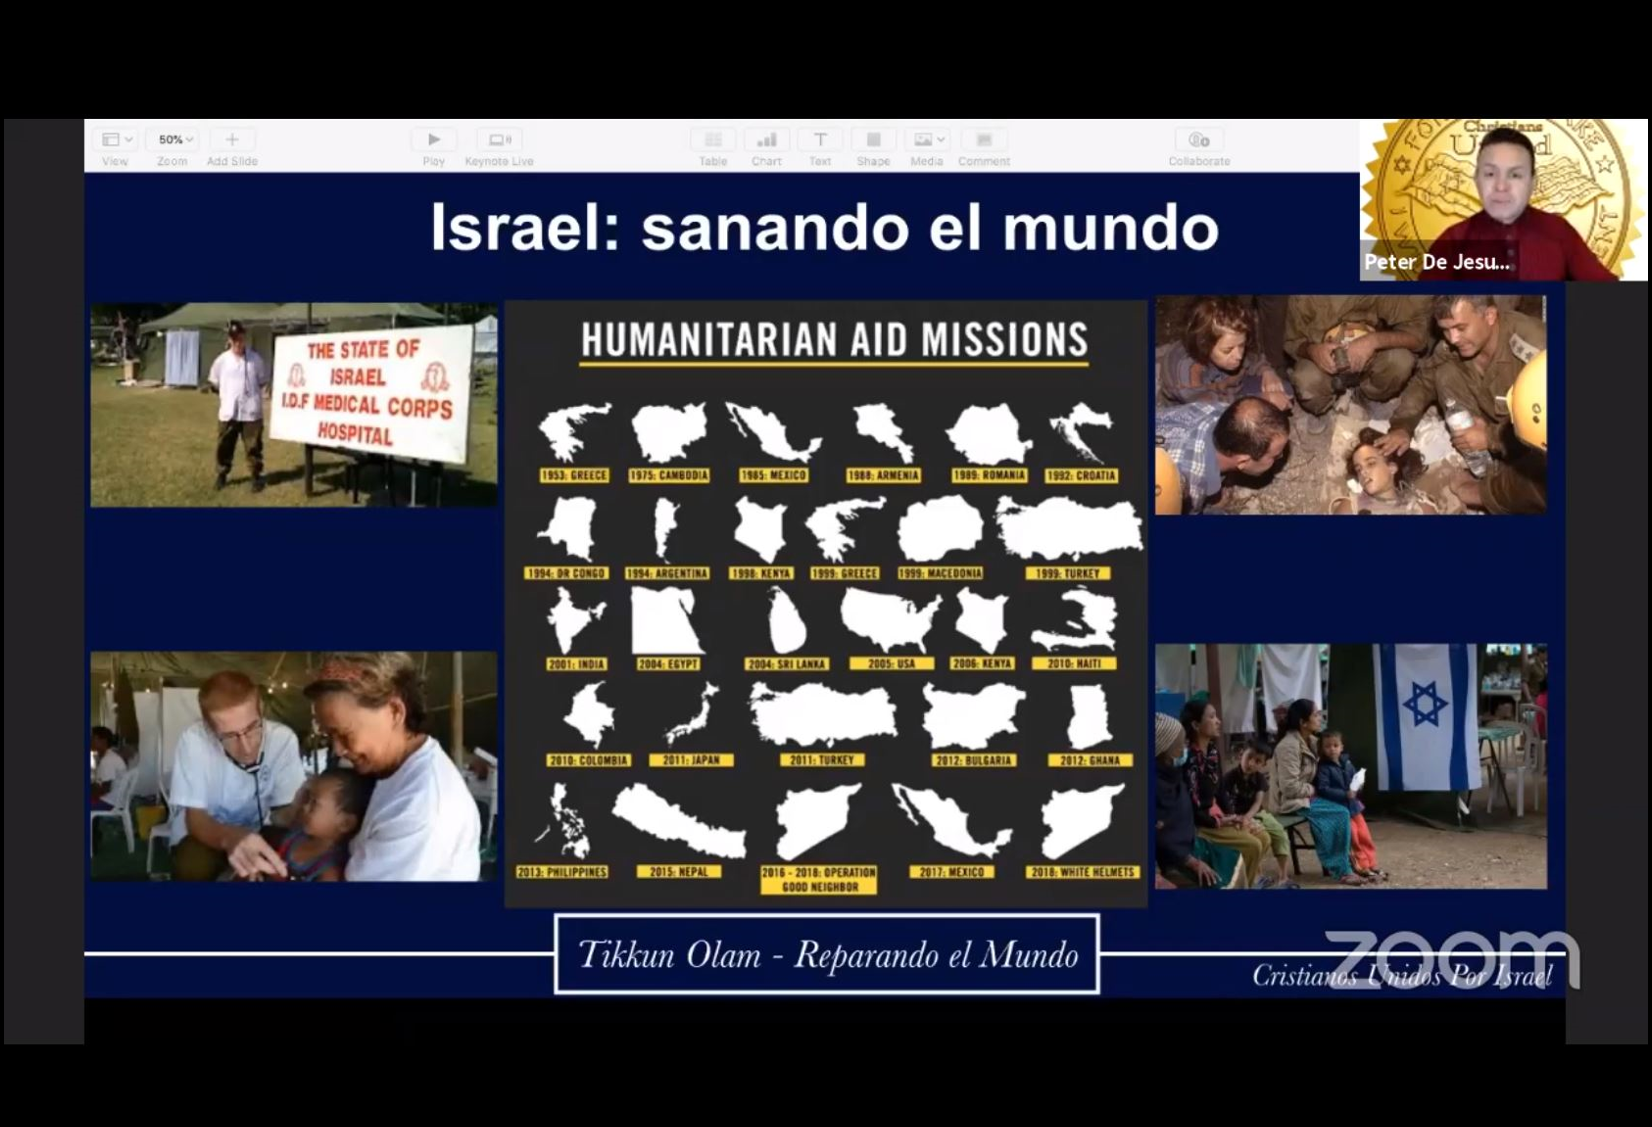 October 29 - Spanish Why Israel?